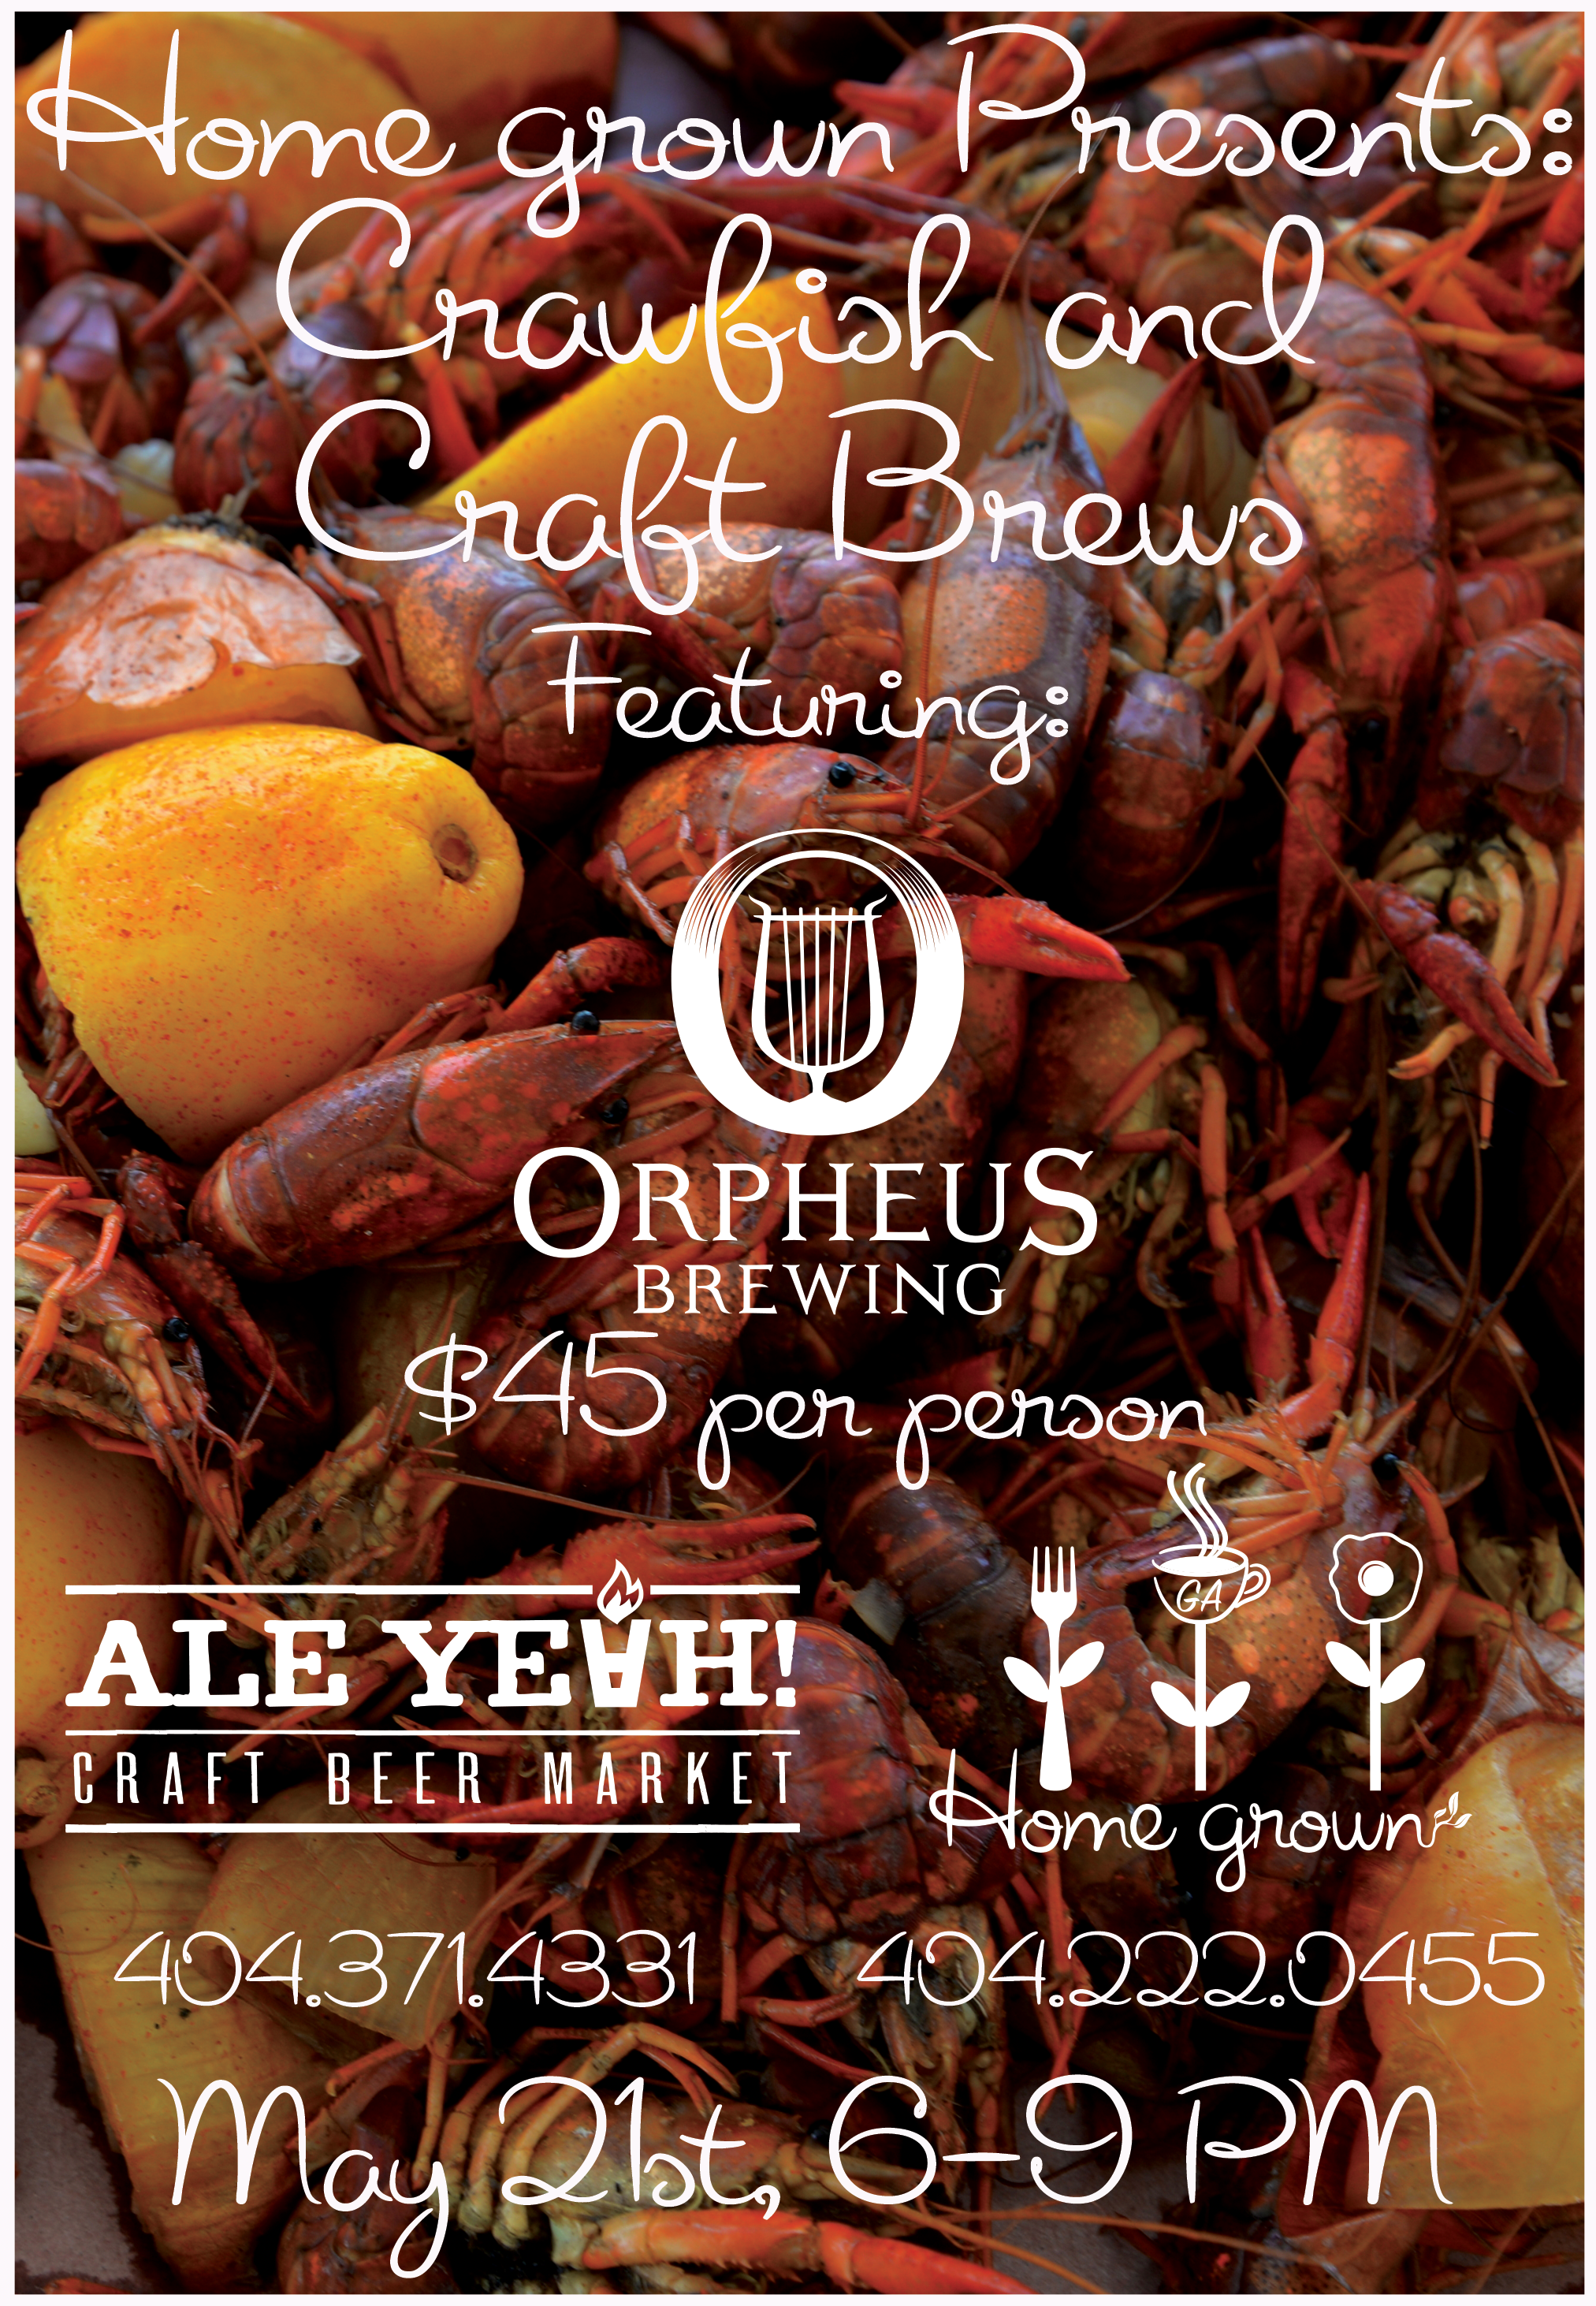 crawfish, orpheus, ale yeah